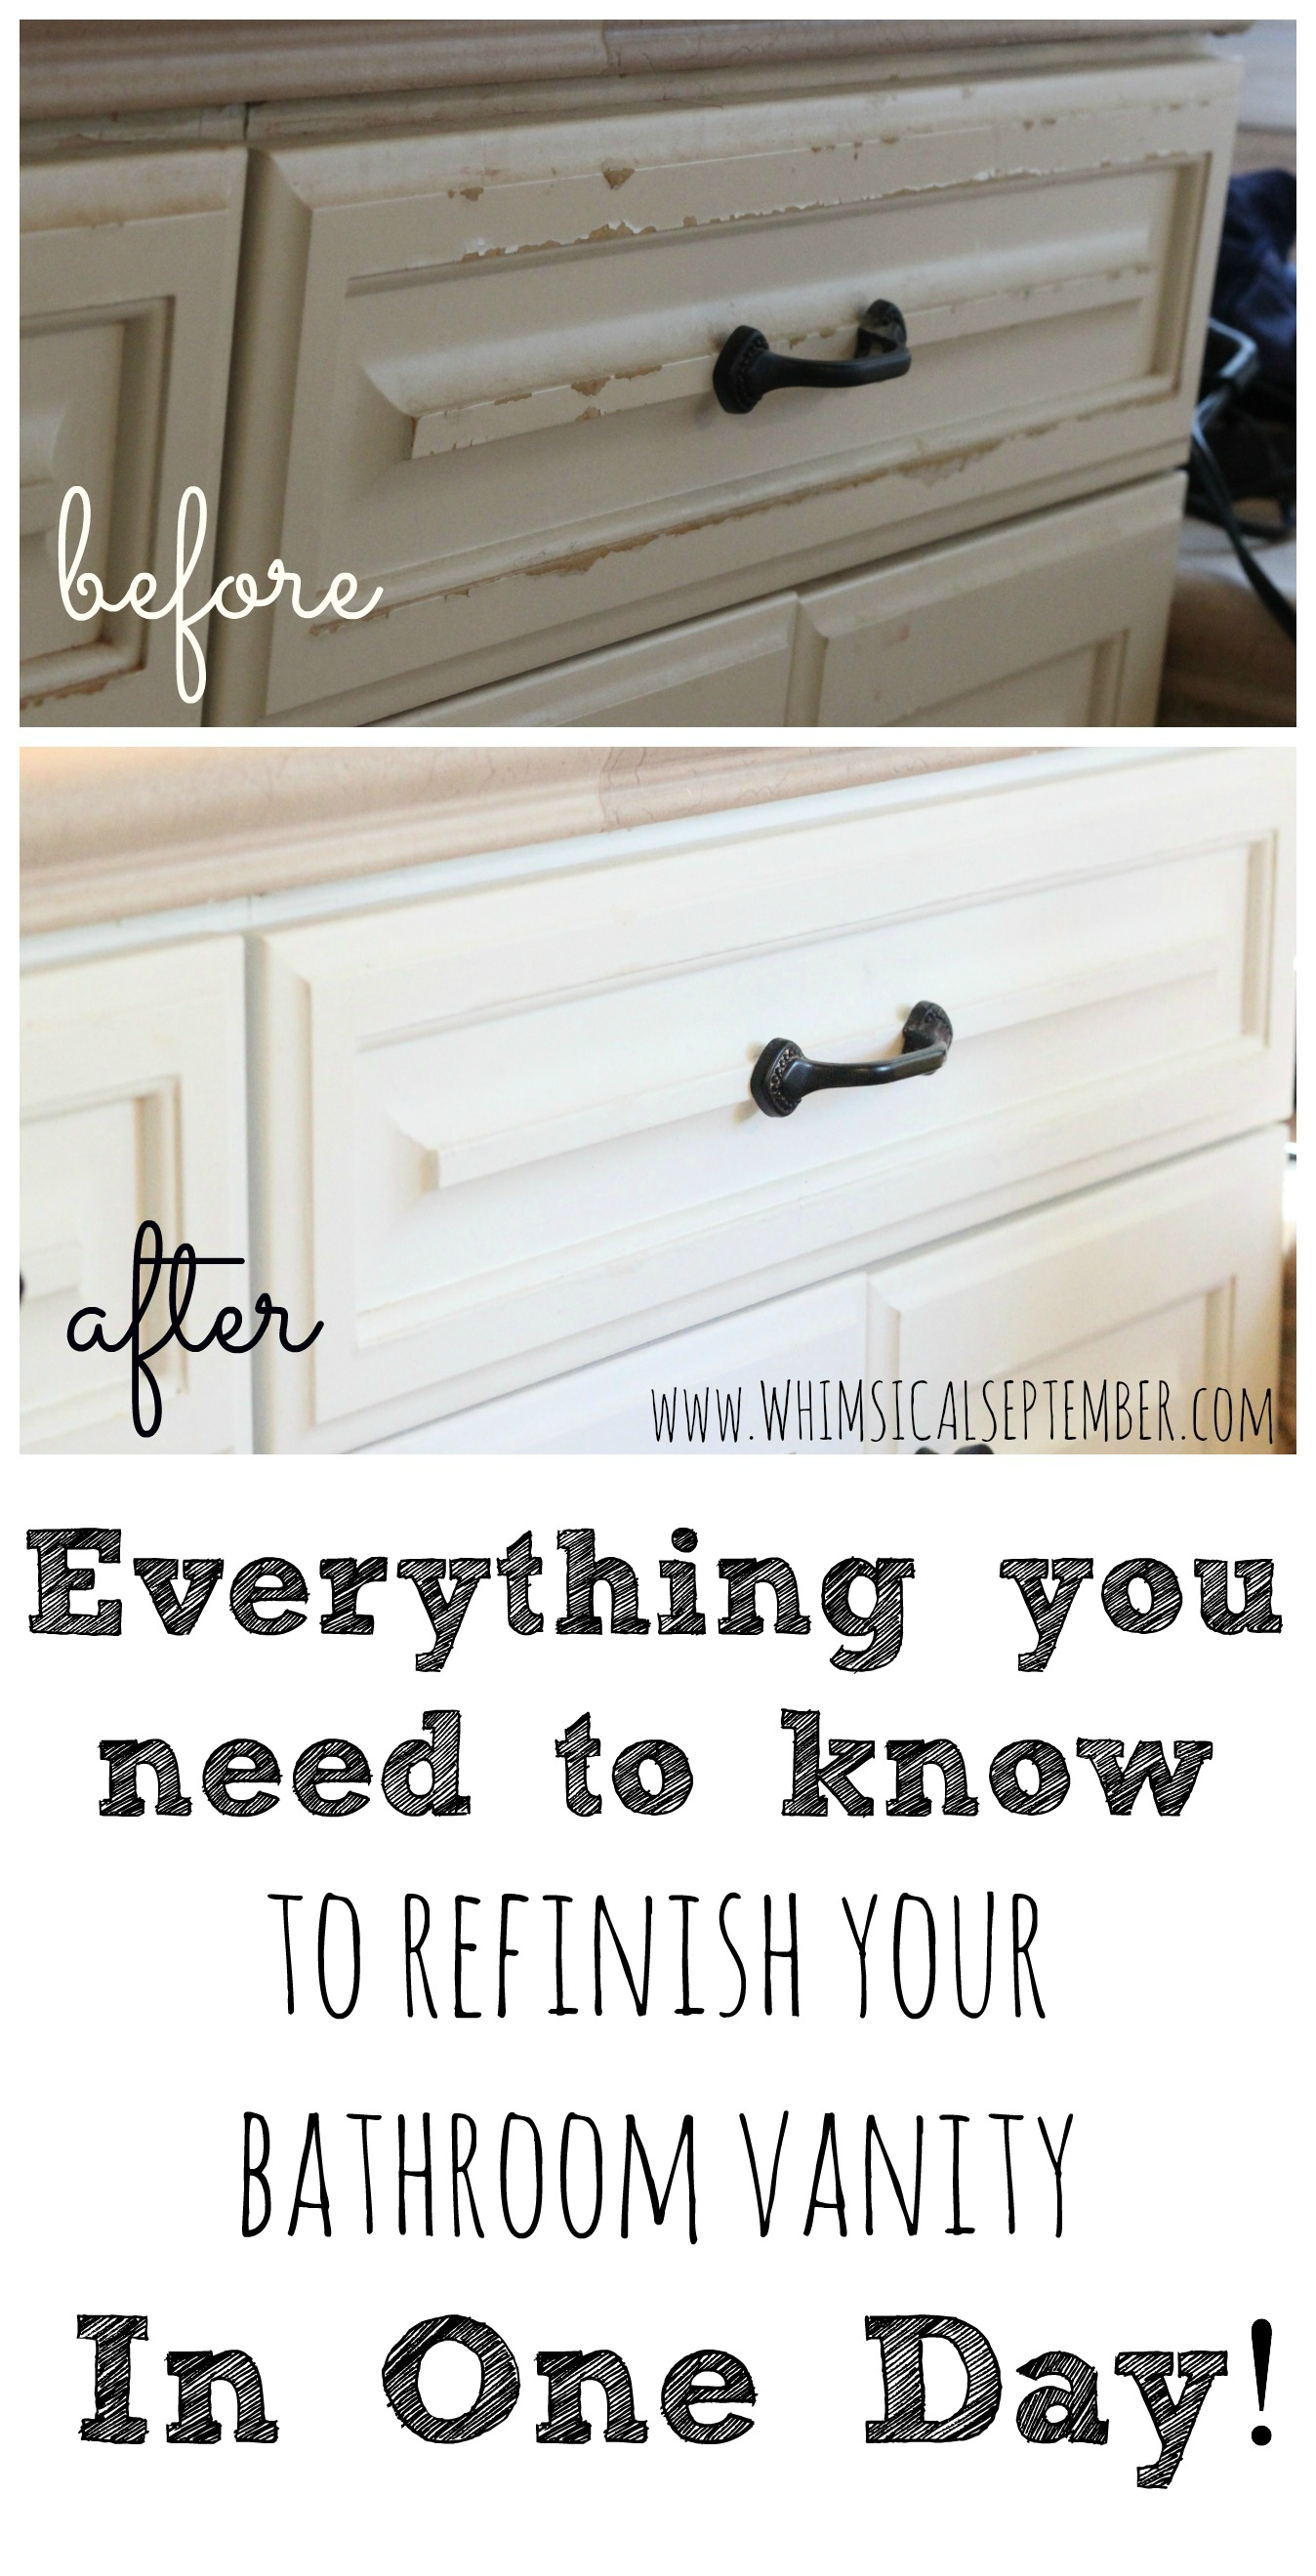 diy refinished bathroom vanity with chalk paint - Refinishing Bathroom Vanity